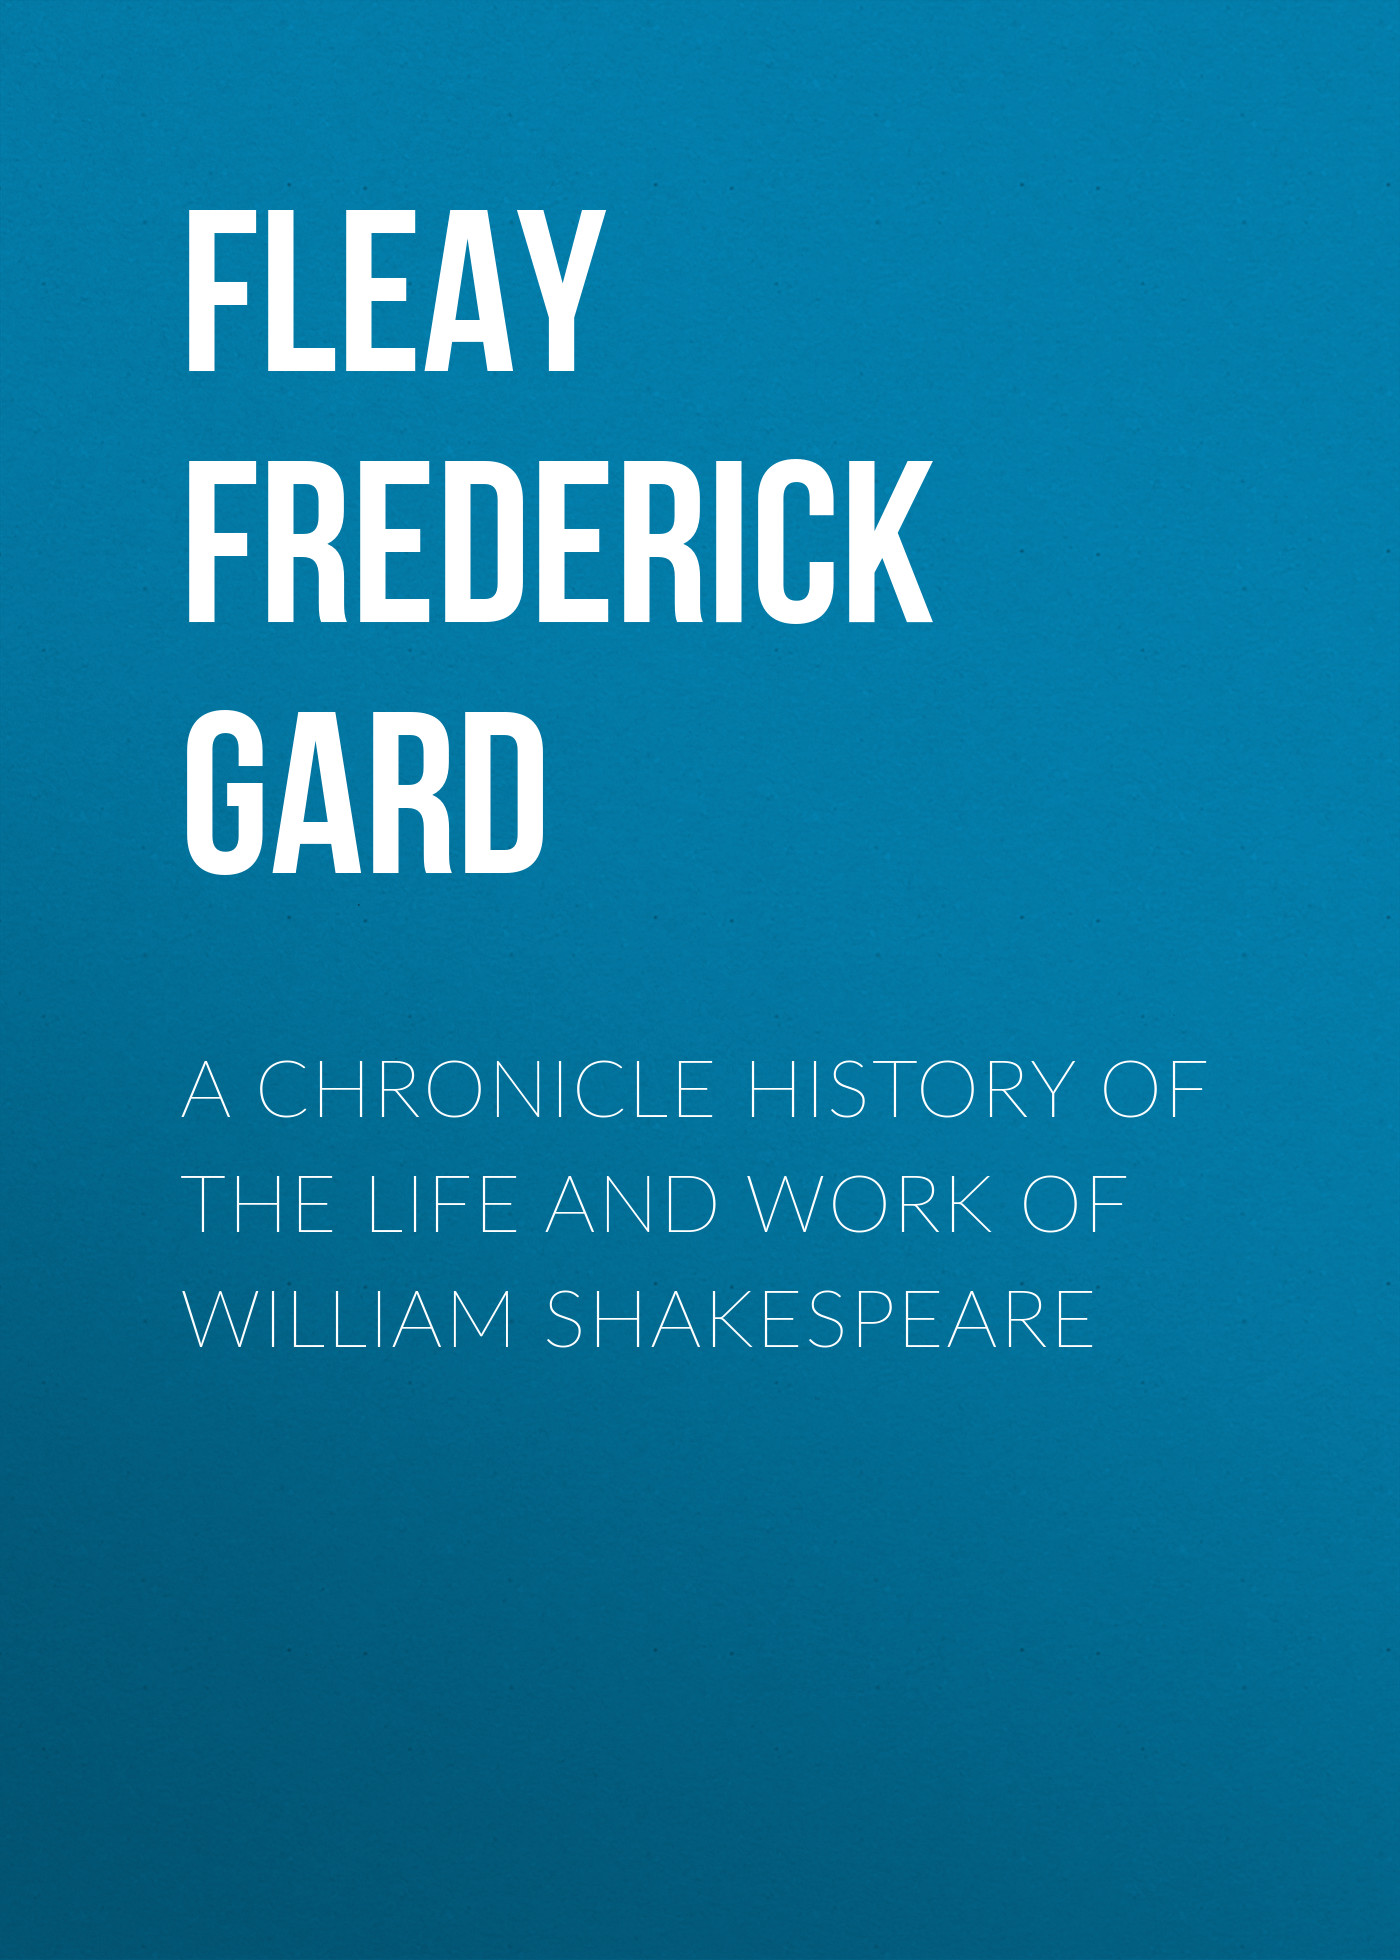 лучшая цена Fleay Frederick Gard A Chronicle History of the Life and Work of William Shakespeare